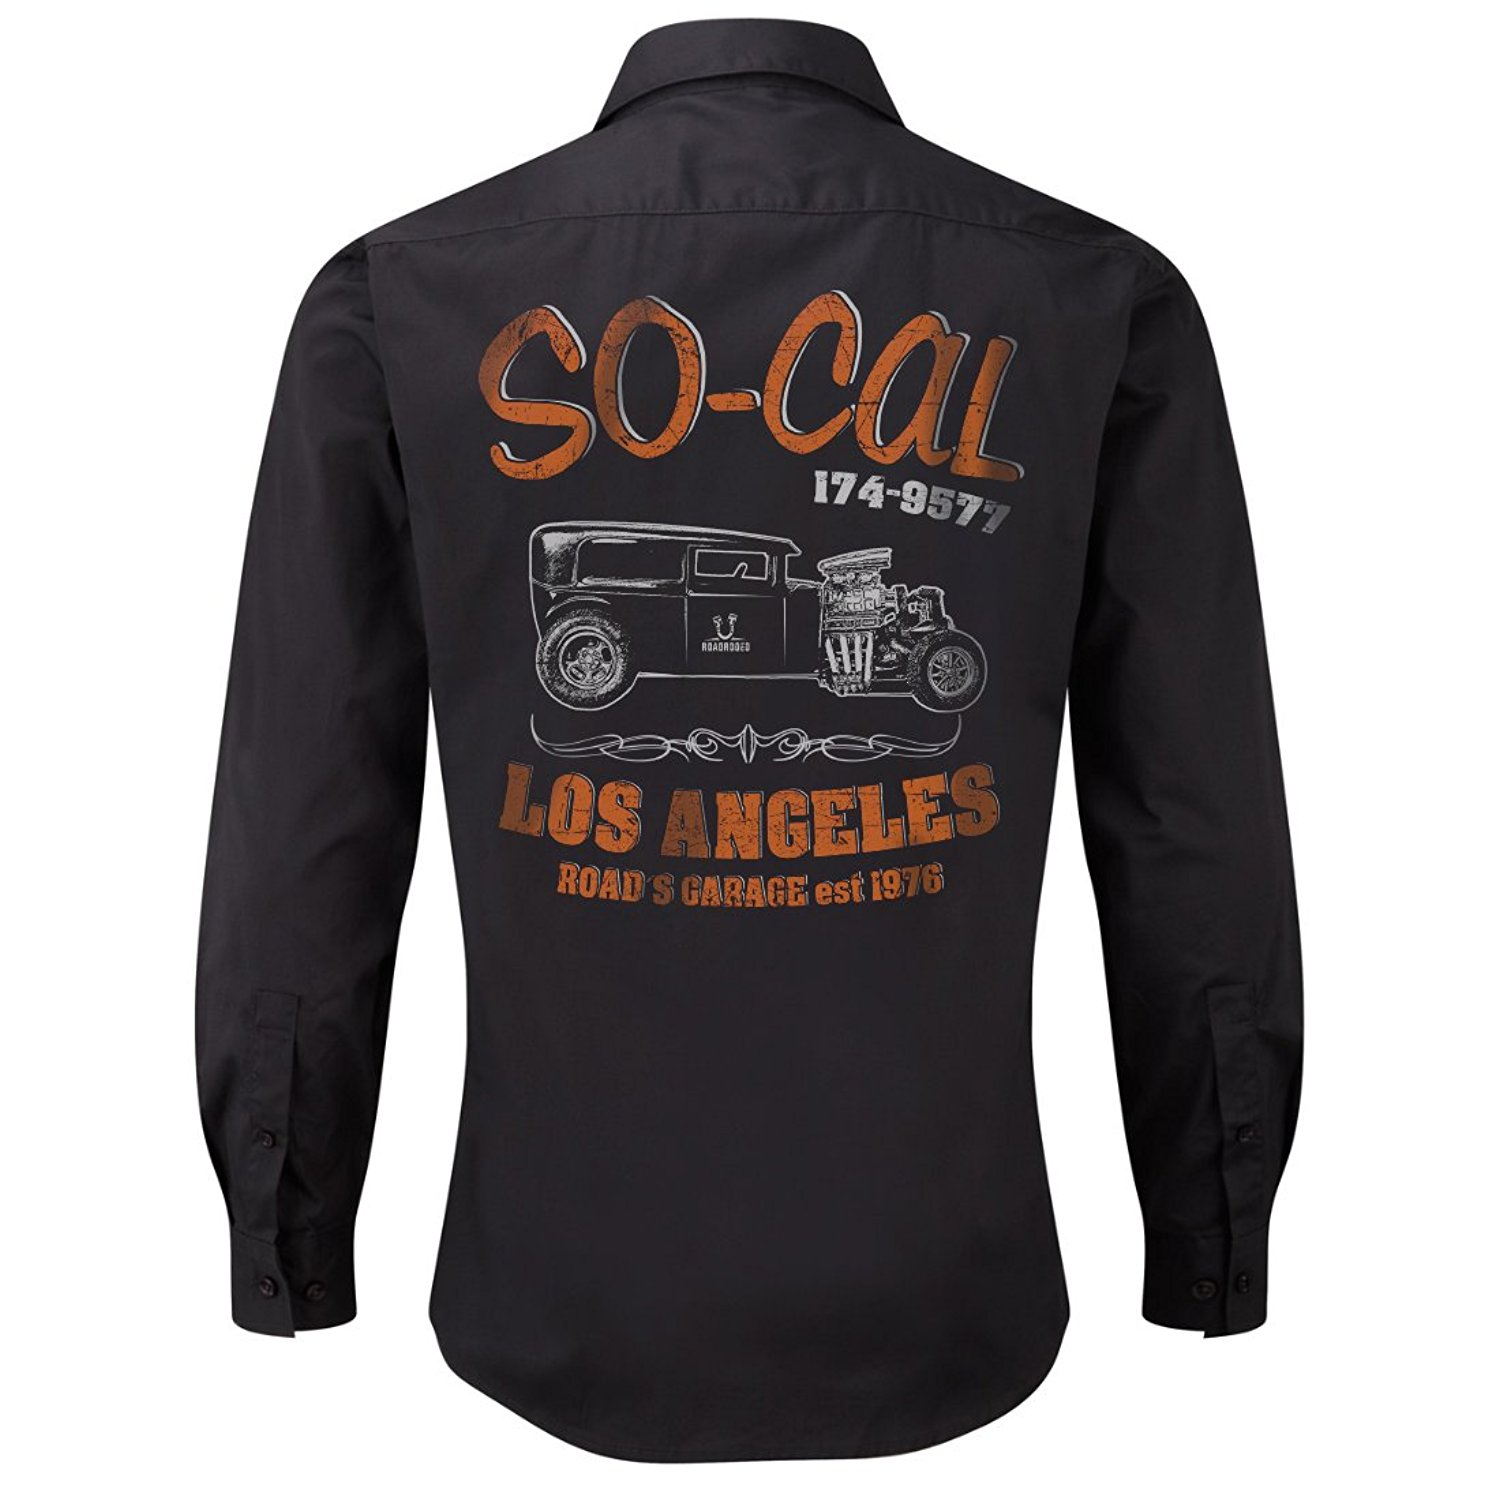 ROAD RODEO Rockabilly,Mechanic Work Shirt, Longsleeve, Rock'n'Roll, Hot Rod, V8, US Car, SoCal